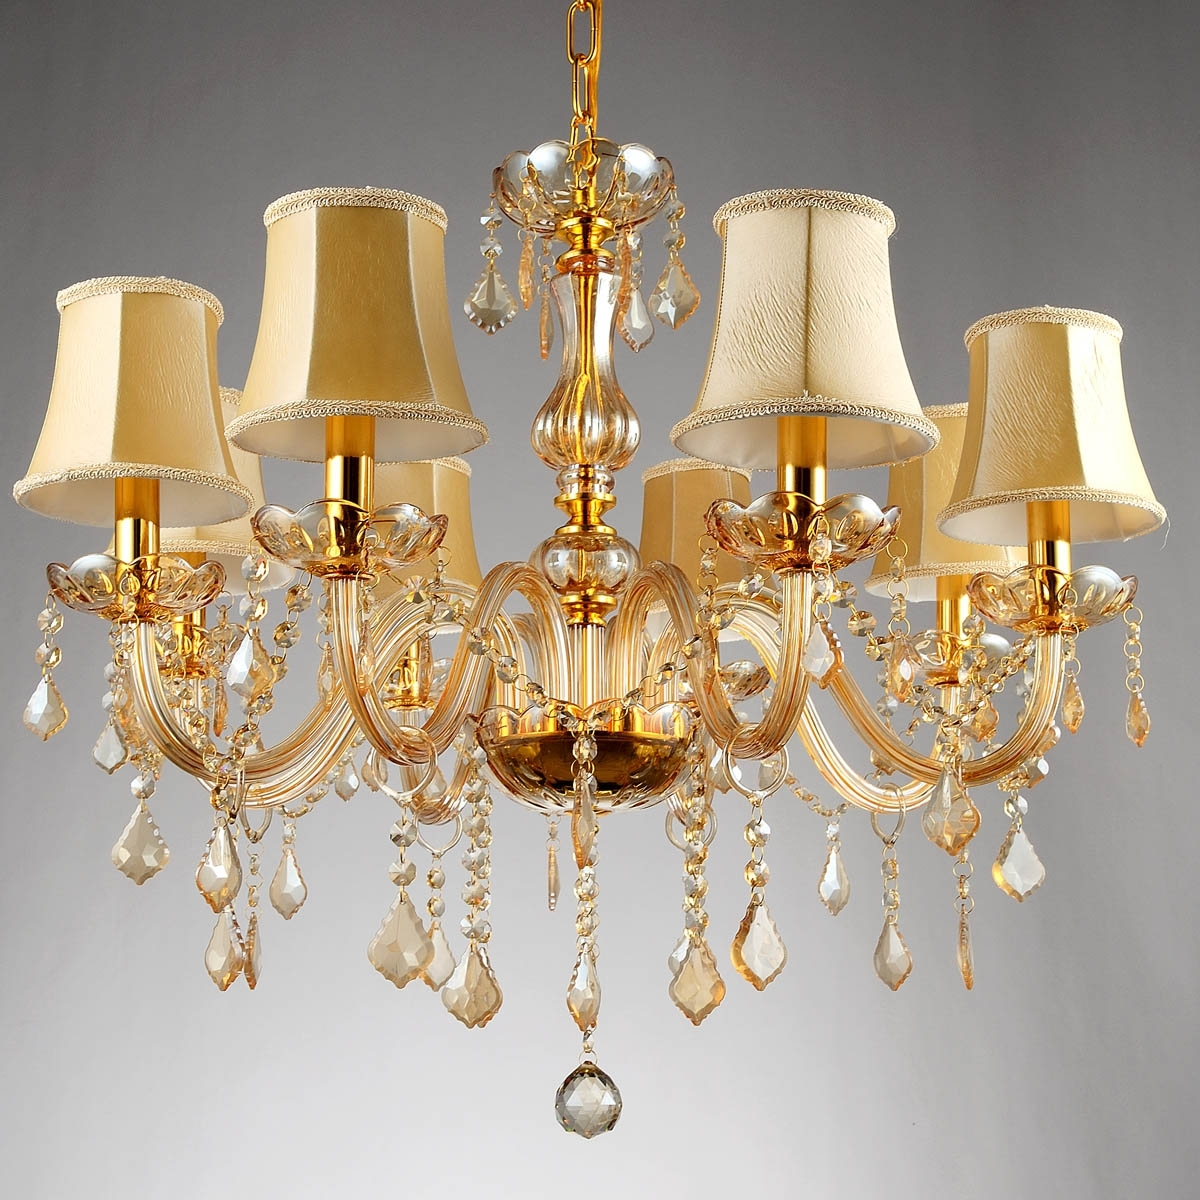 Famous Free Ship 6/8 Arms Fashion Crystal Chandelier Lighting Bedroom With Regard To Crystal Gold Chandeliers (View 7 of 20)